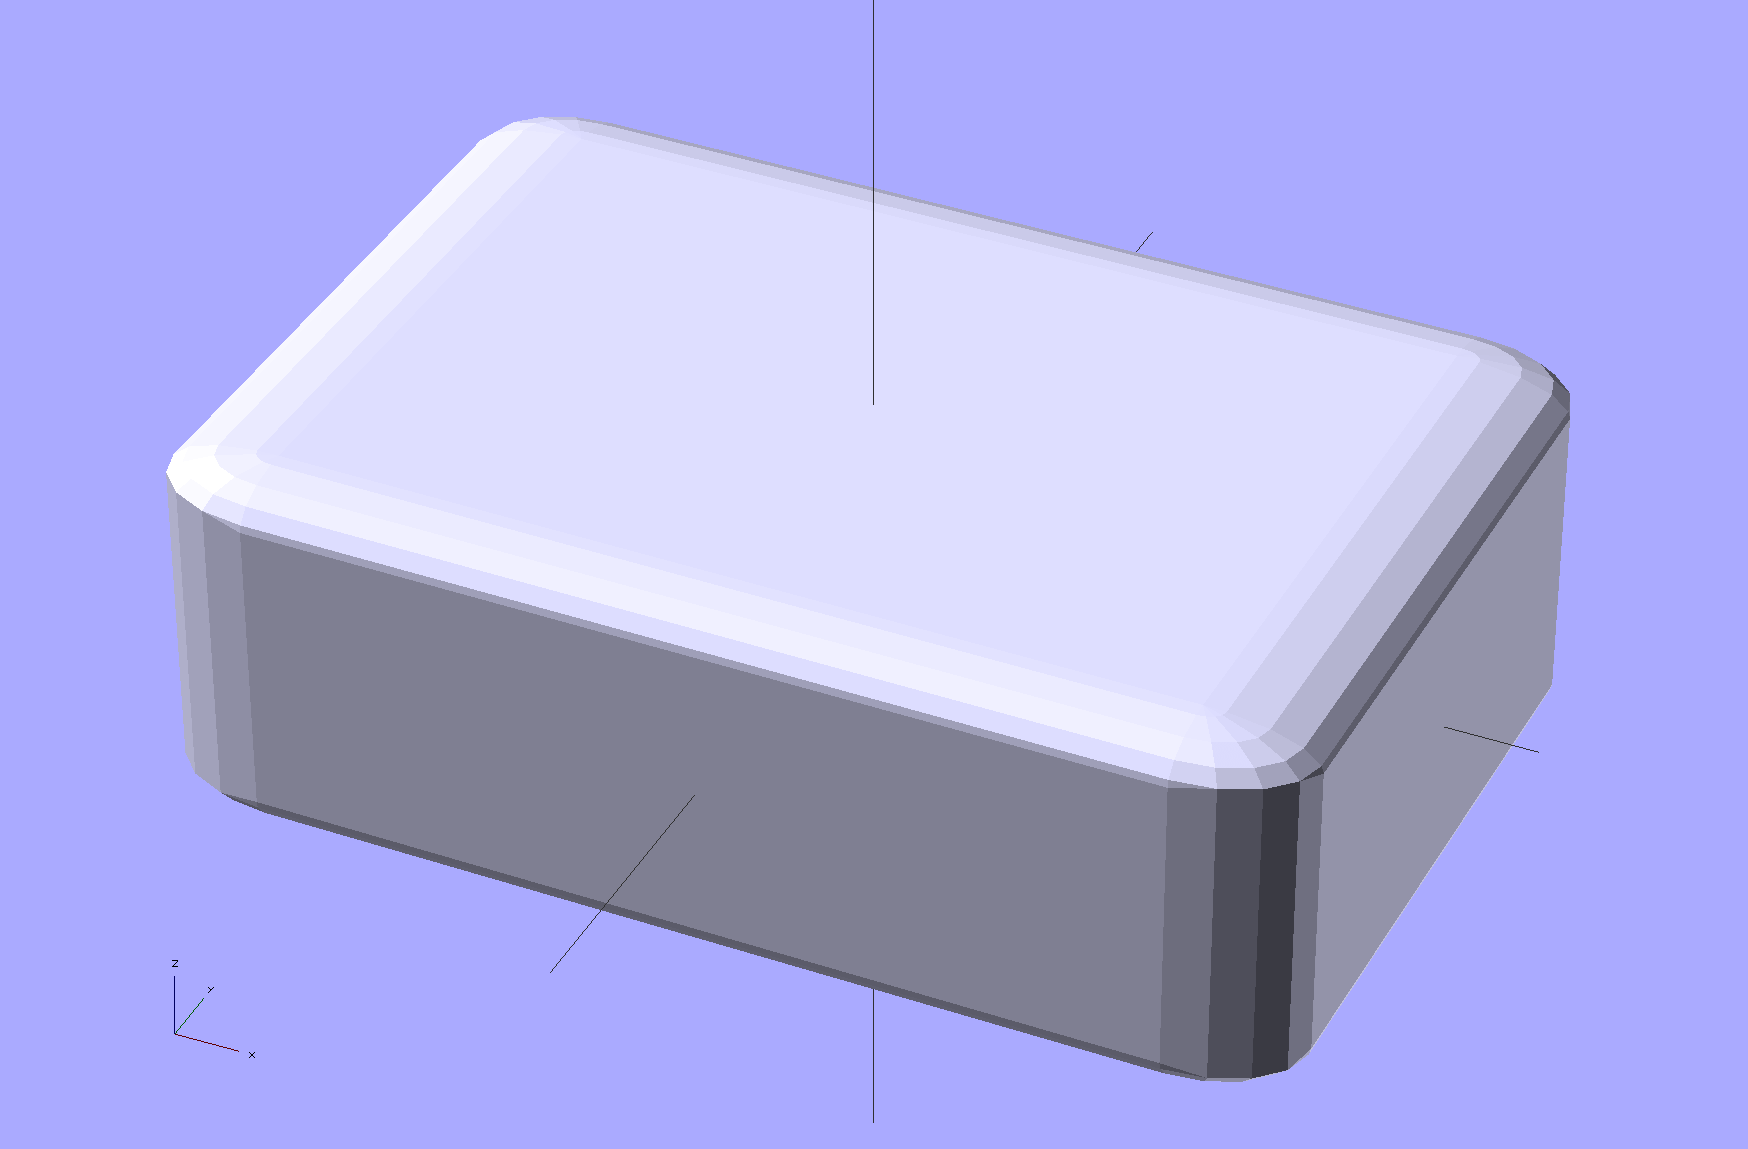 Rounded Rectangles in OpenSCAD: Mold Positives? | The Smell